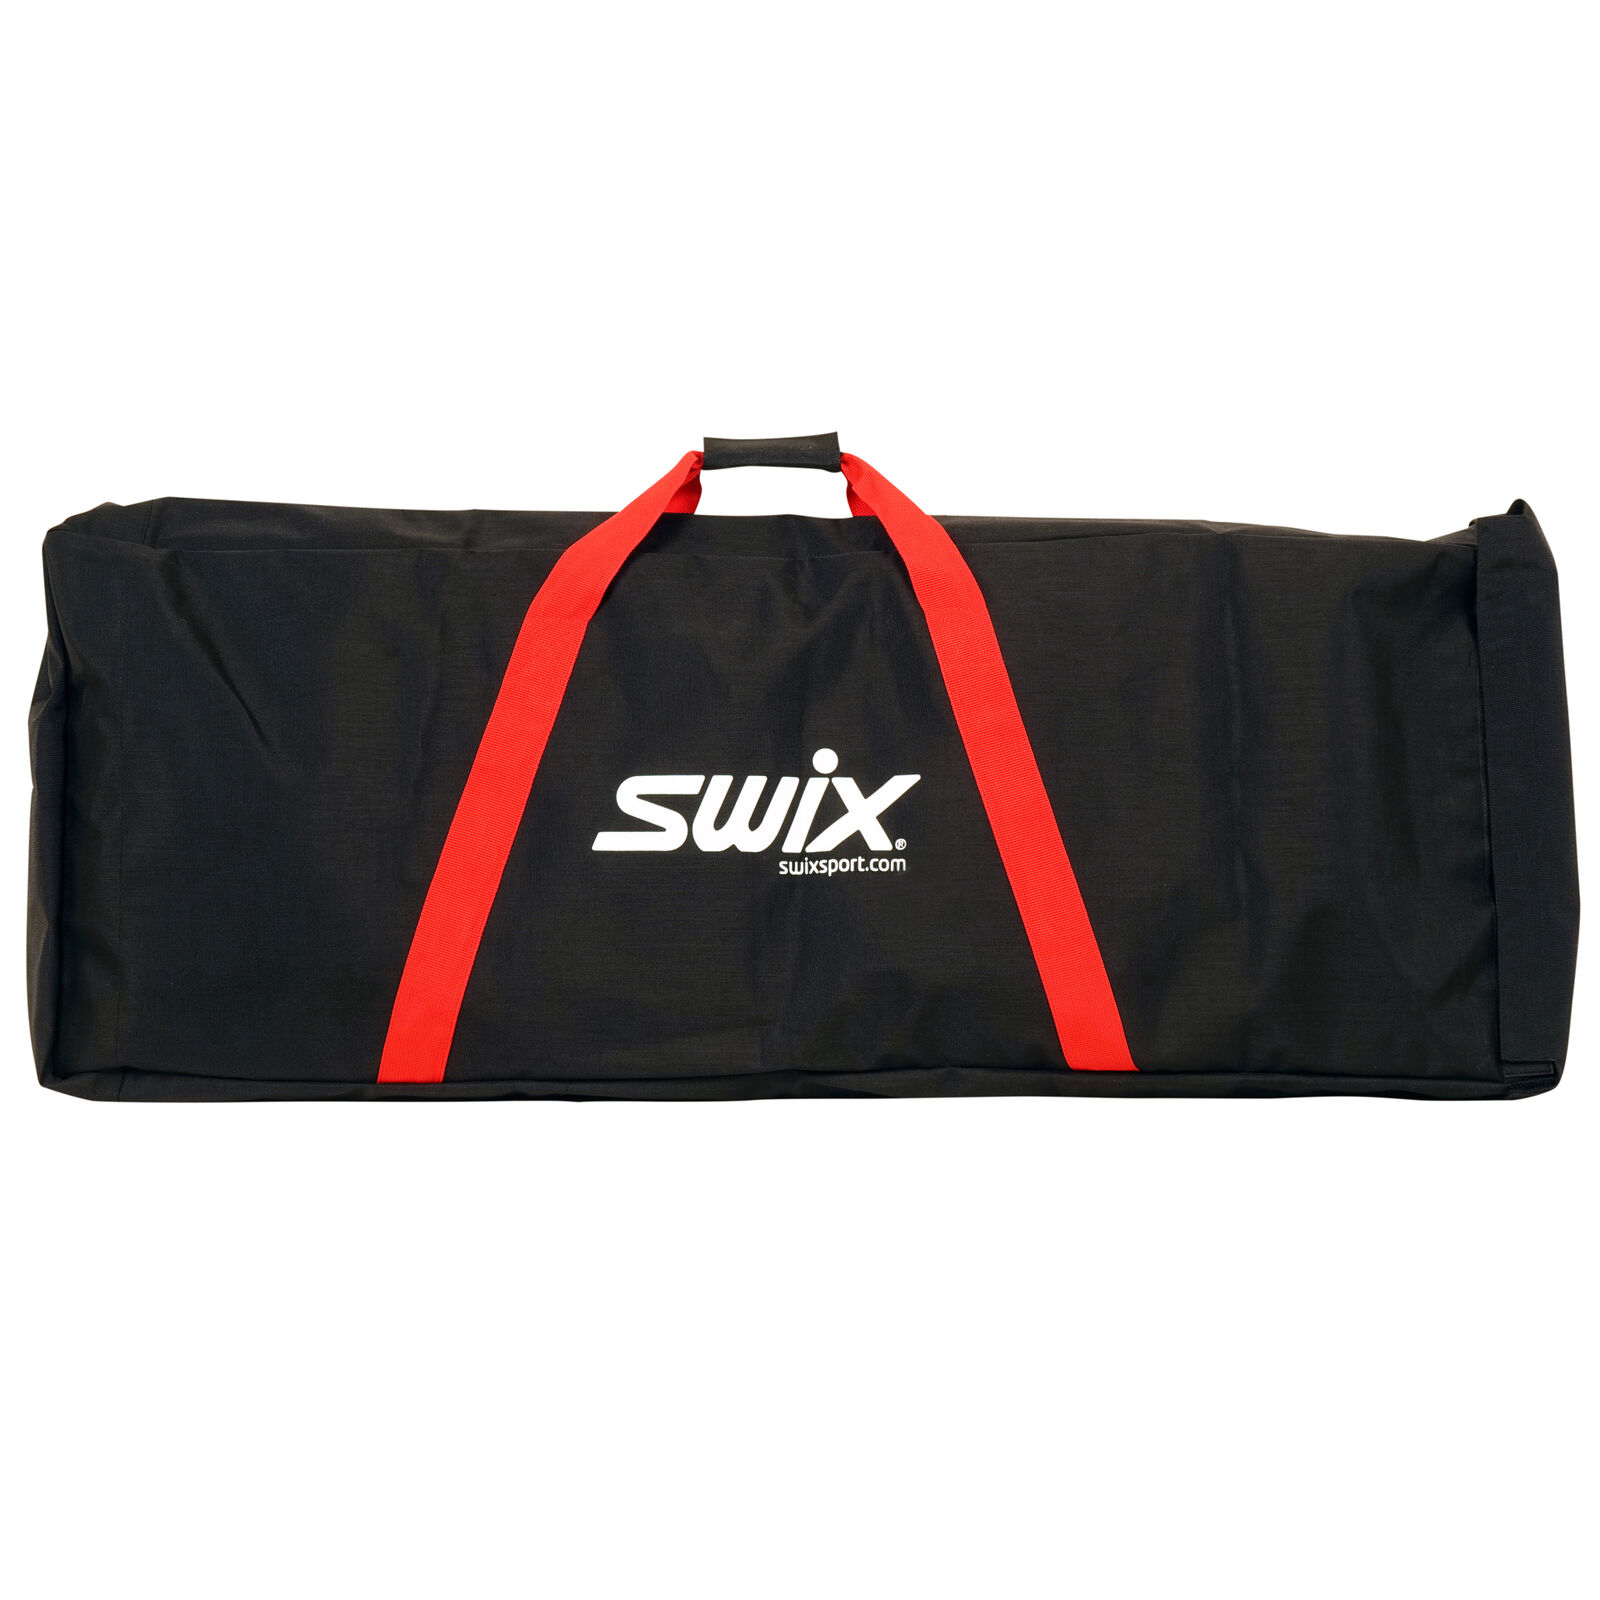 Swix Travel Bag for Waxing Tables T0076 and T0076-2